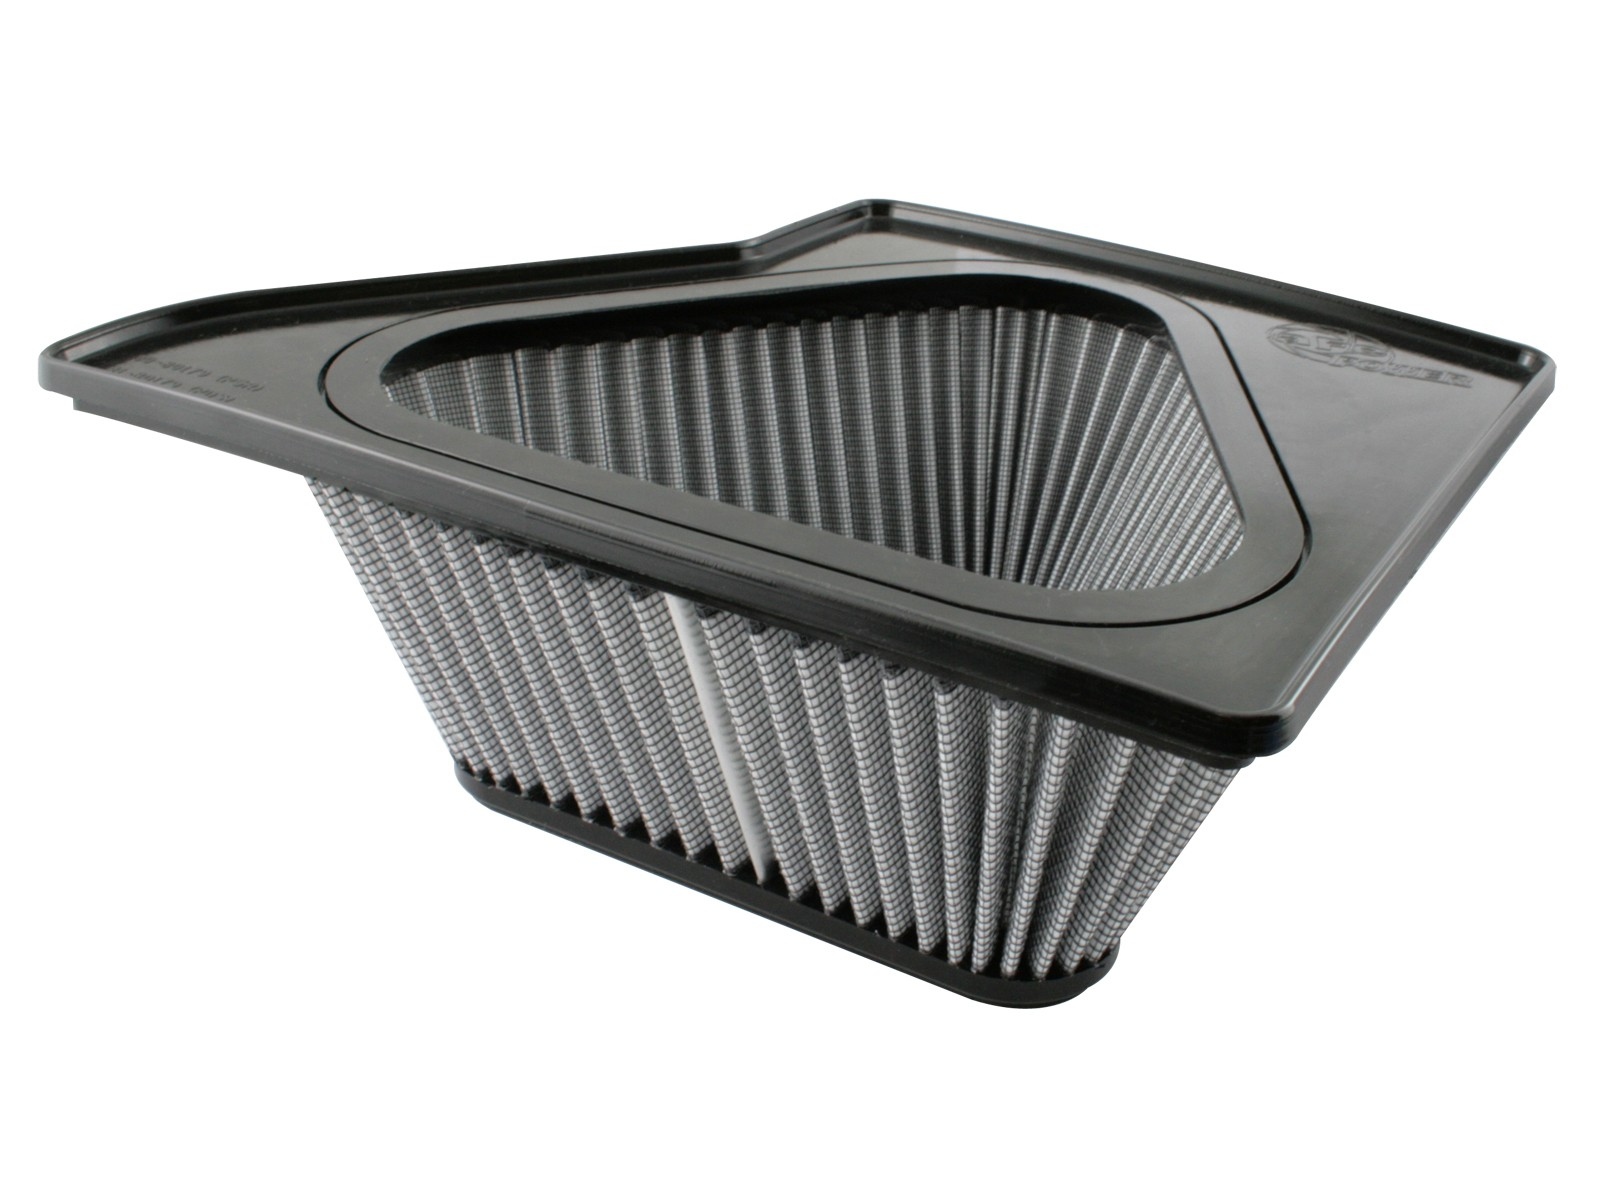 aFe POWER 31-80179 Magnum FLOW Pro DRY S Air Filter